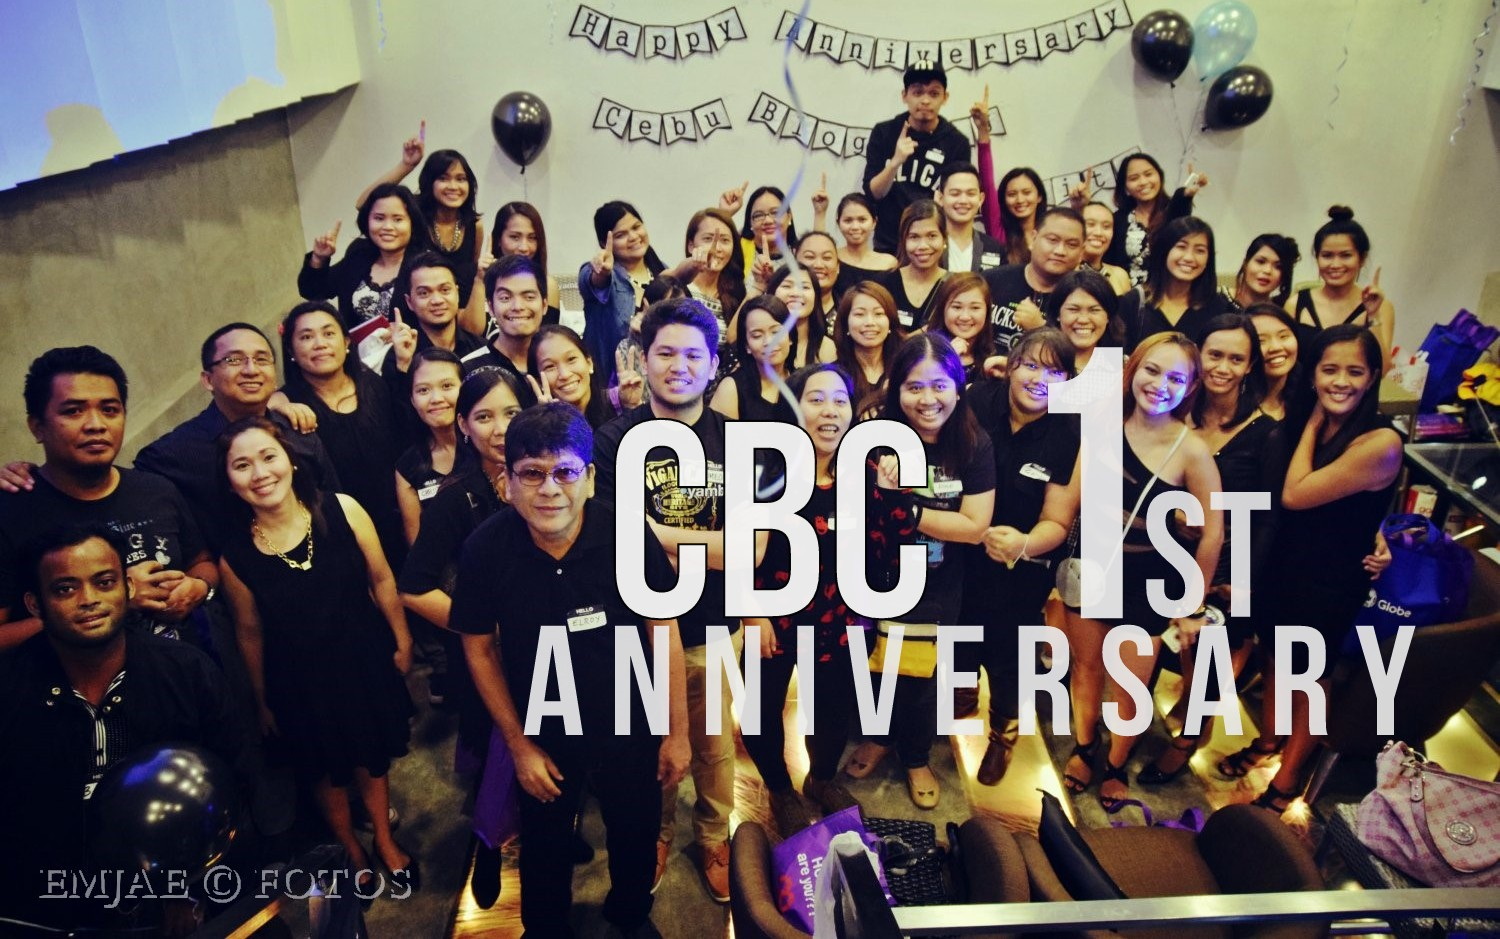 Cebu Blogging Community Celebrates 1st Anniversary